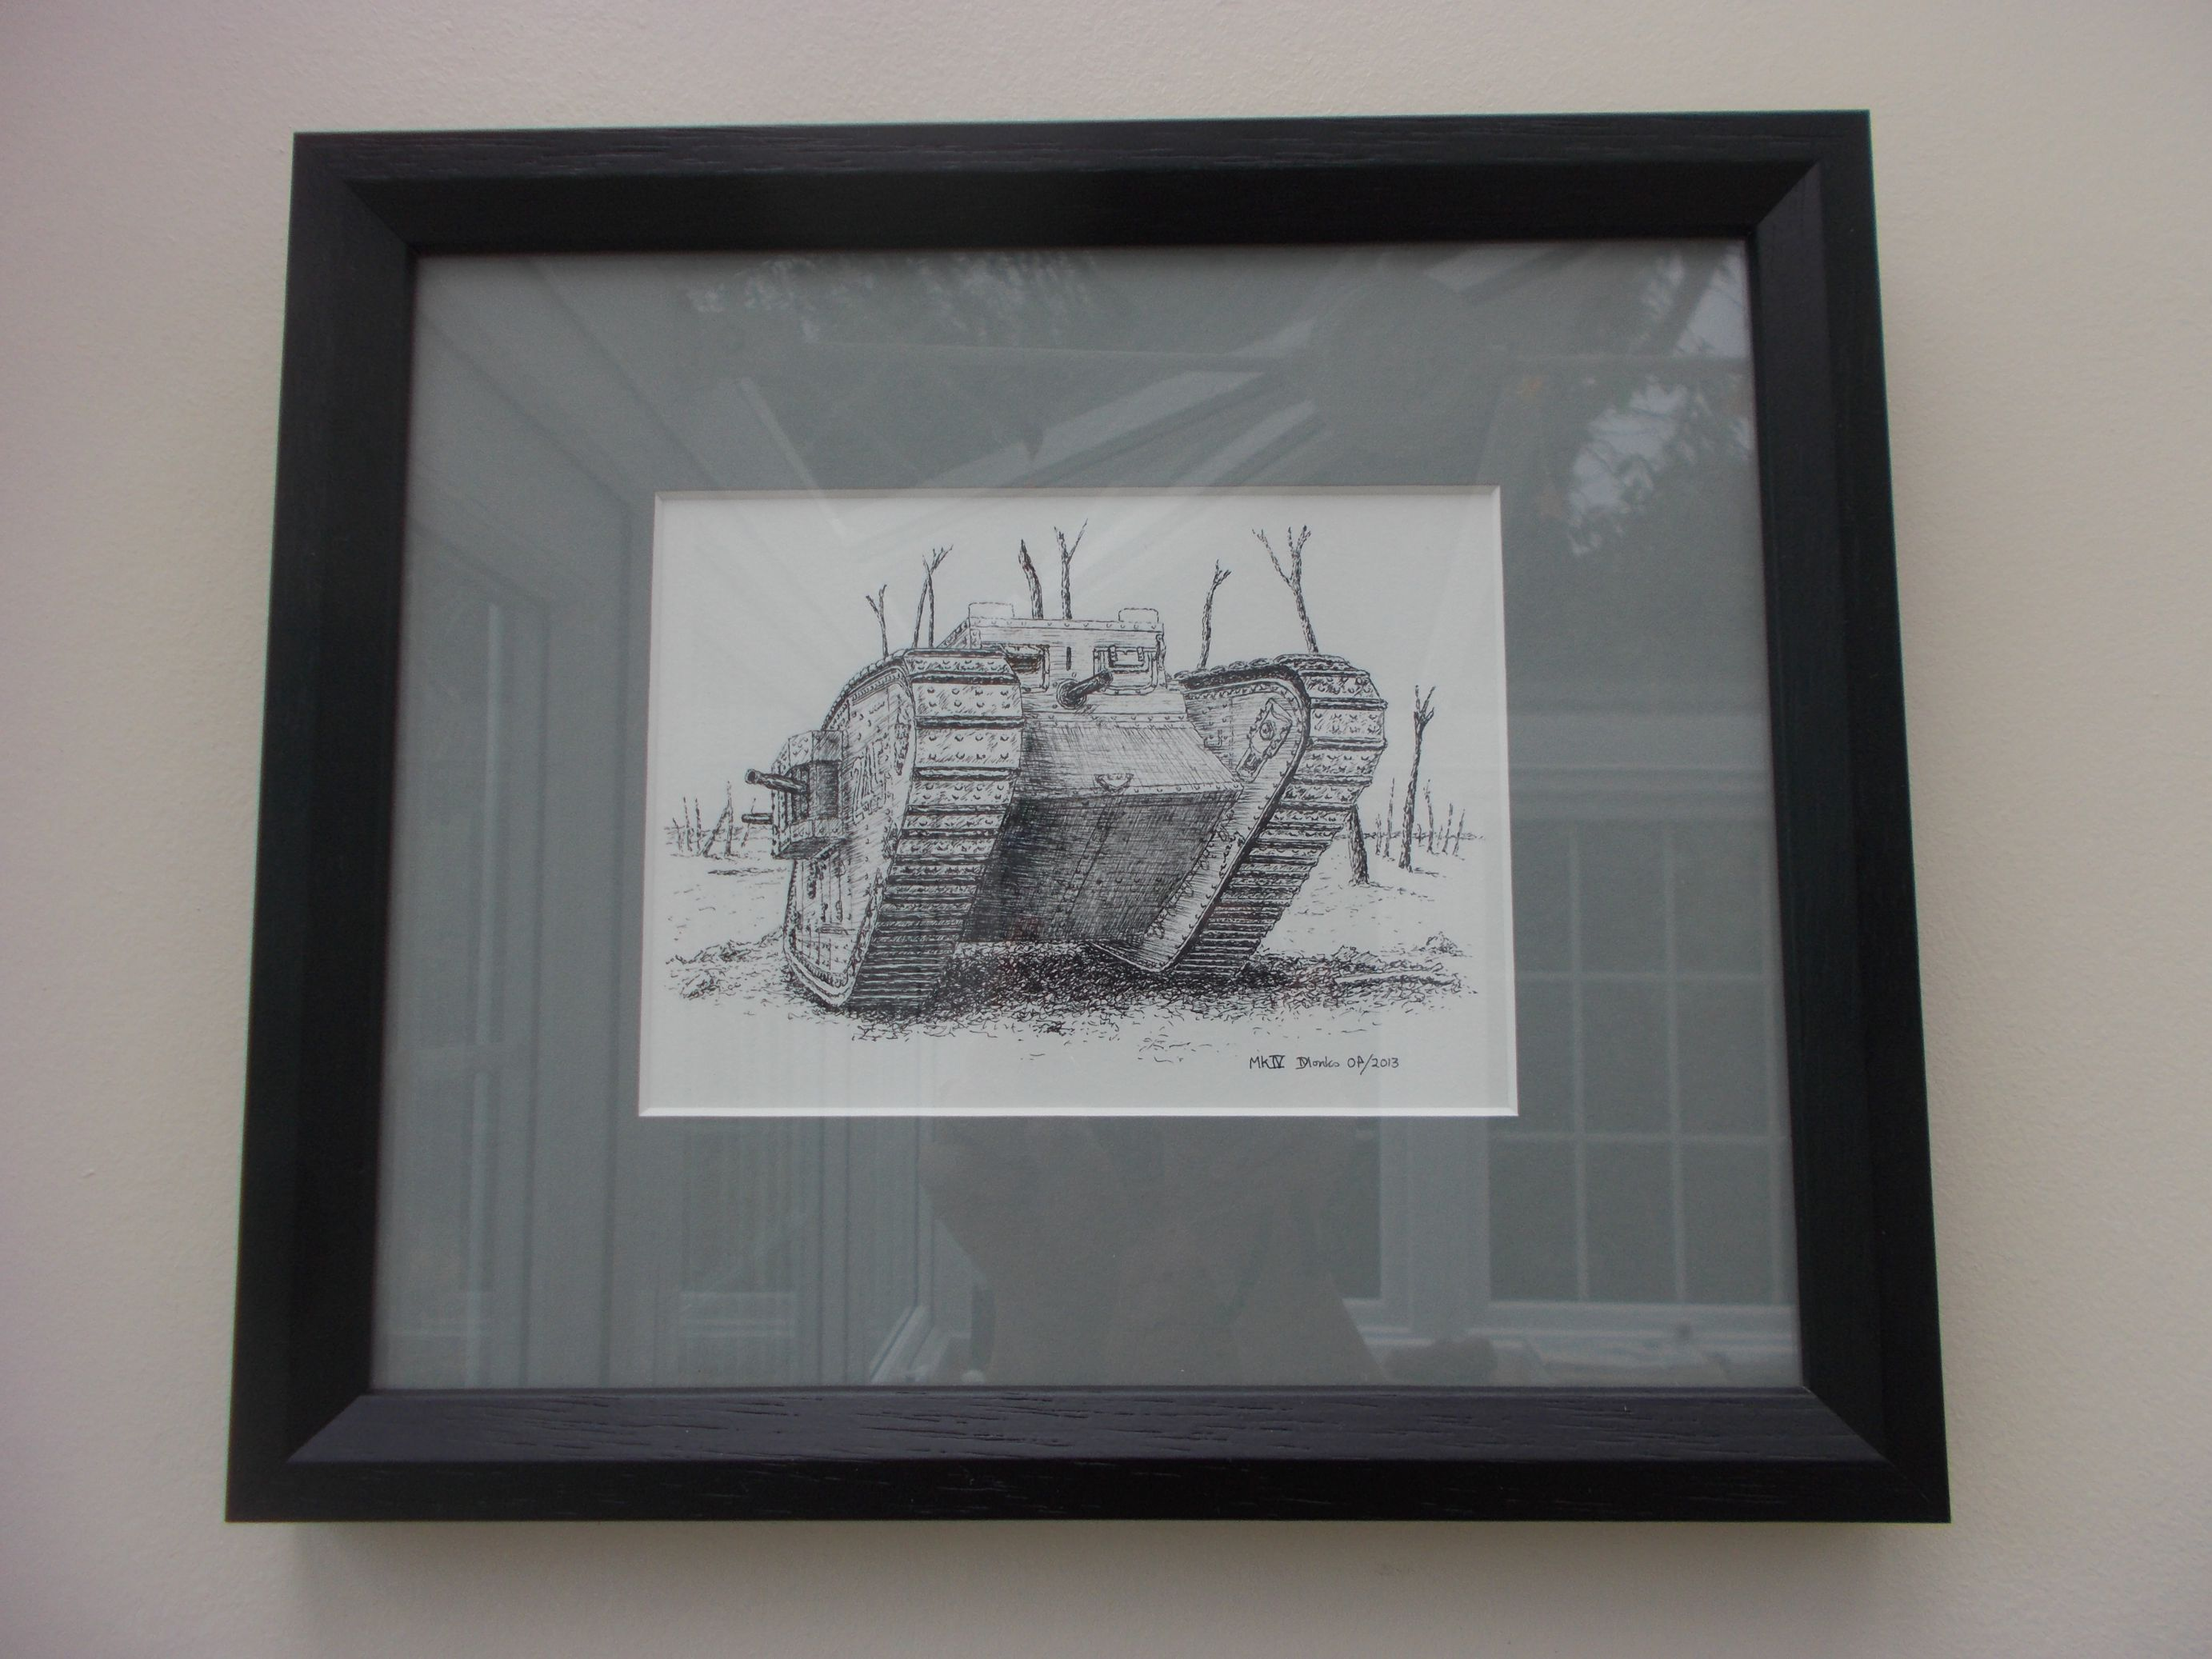 WW1 British MkIV Female Tank - Dawn Monks Framed Original Pen & Ink Illustration